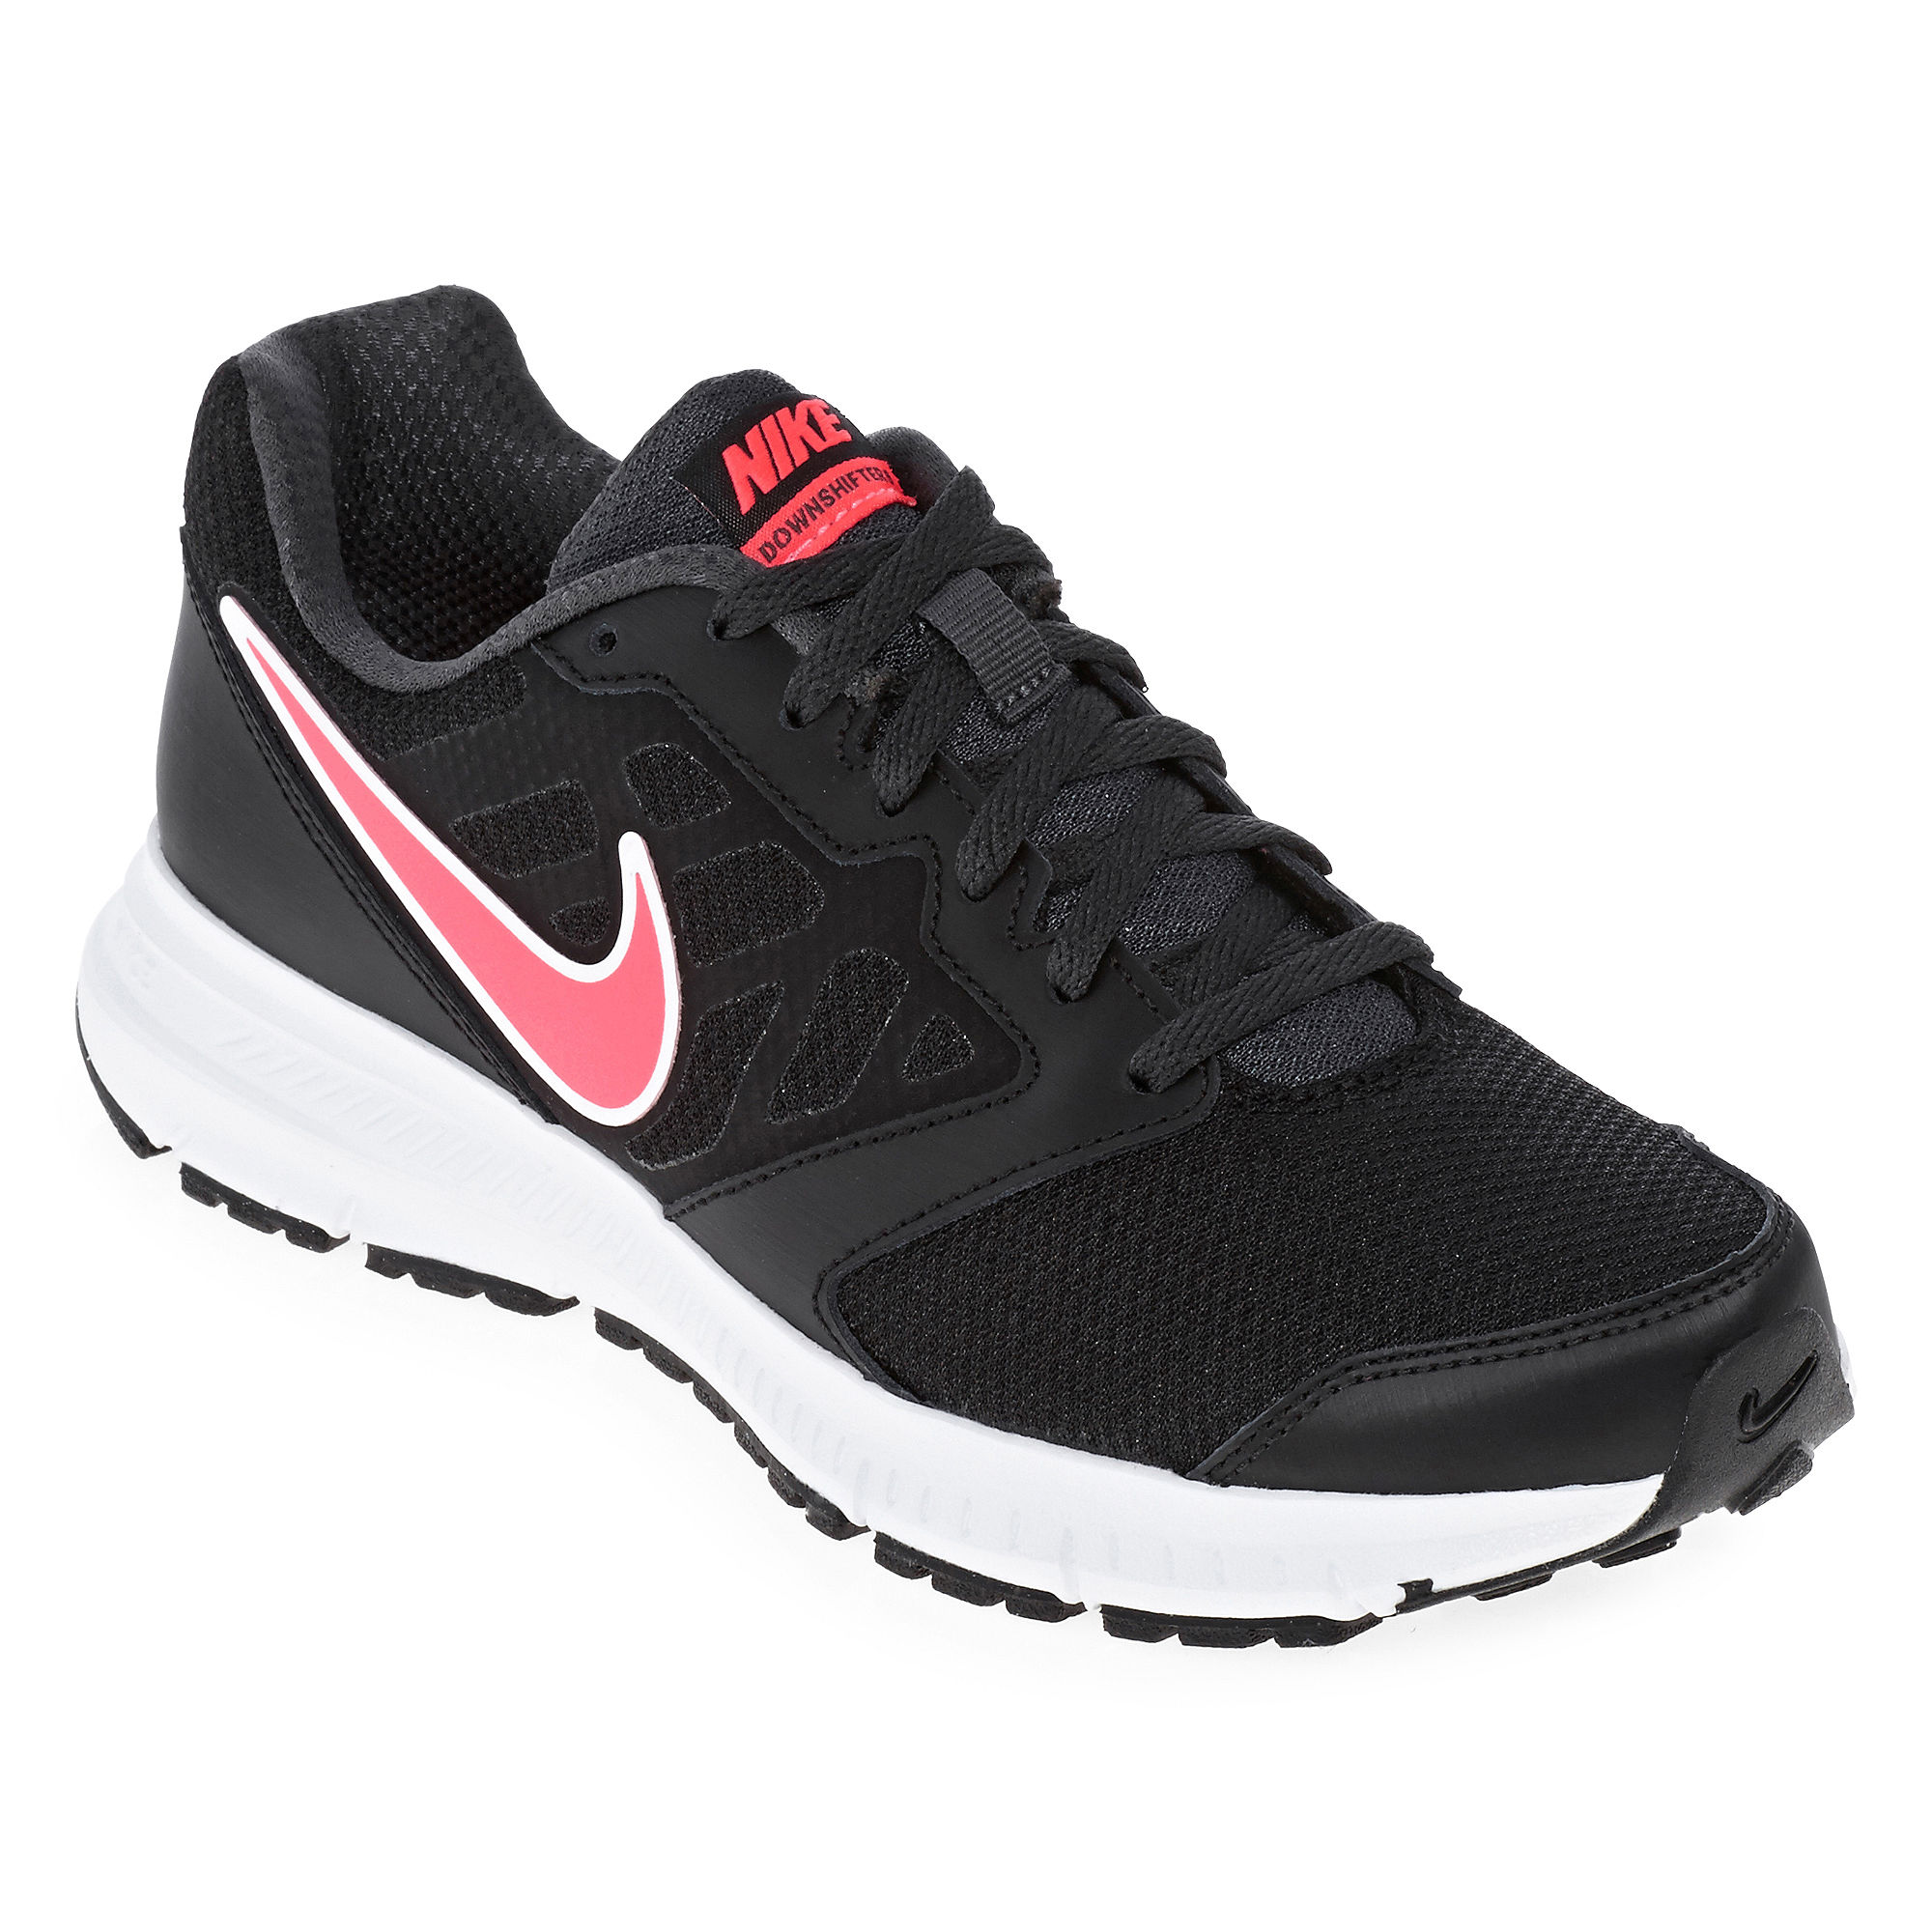 c70c03f282f27 UPC 882801627279 product image for Nike Downshifter 6 Womens Running Shoes  | upcitemdb.com ...